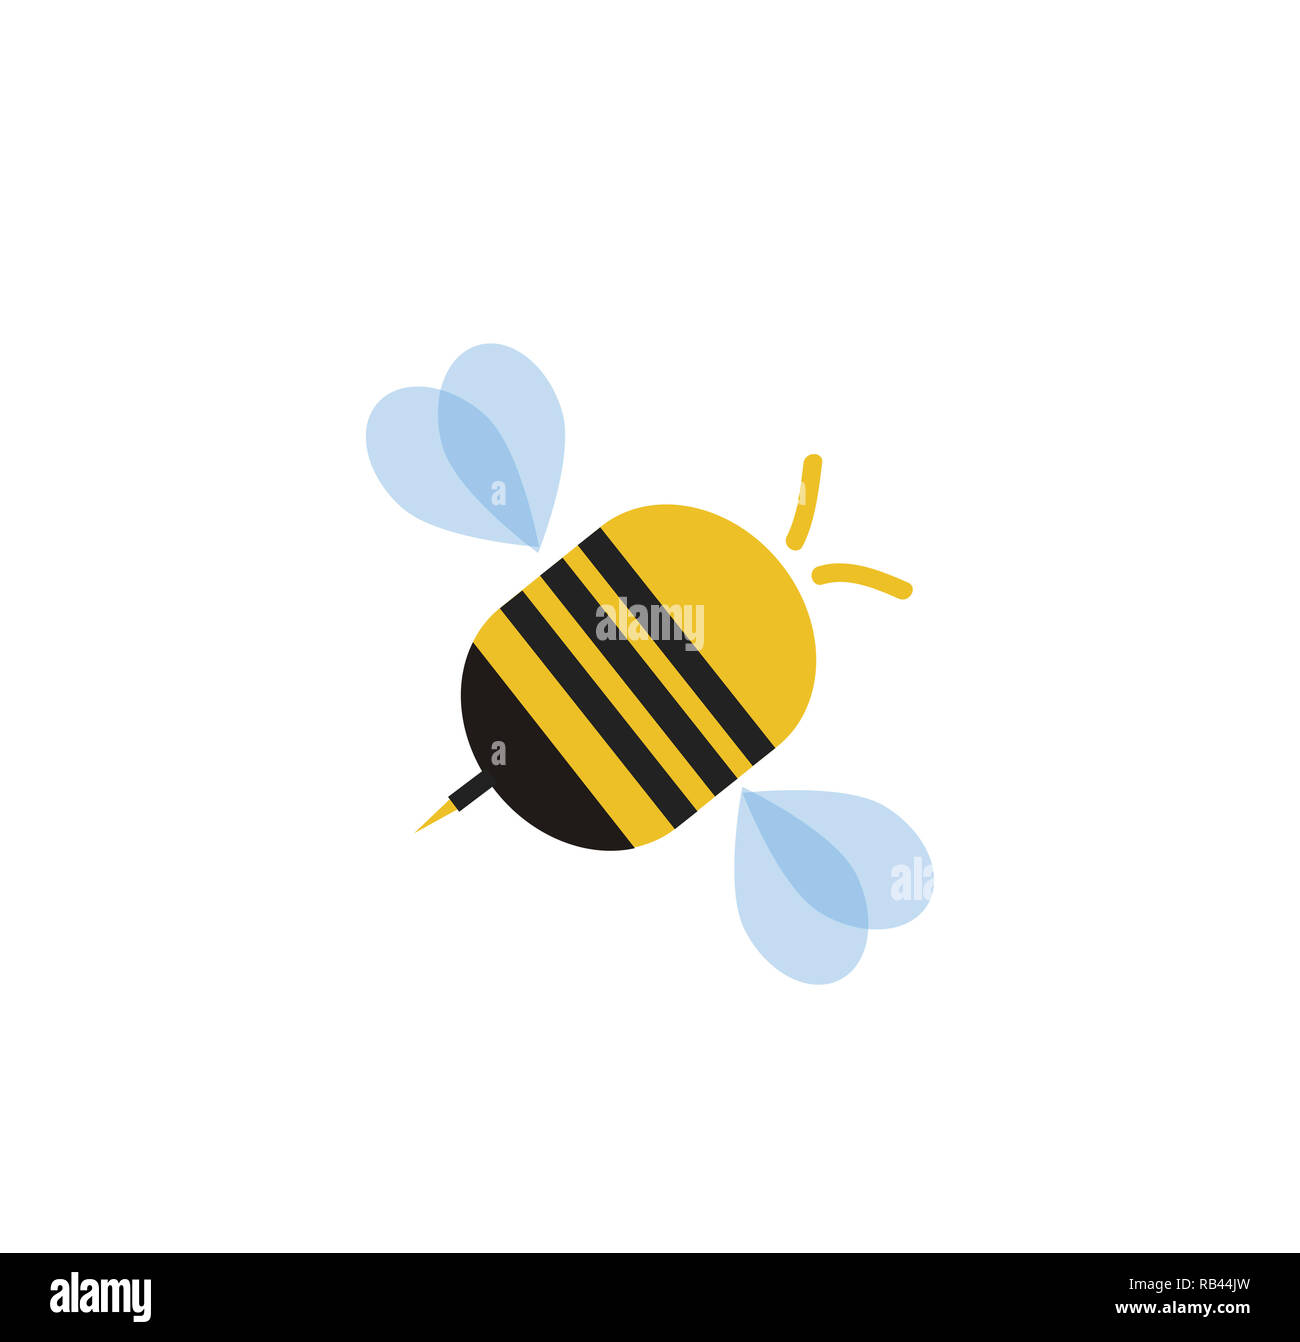 Flying cartoon bee isolated on white background.  illustration clip art, logo, icon for graphic design, greeting card. - Stock Image